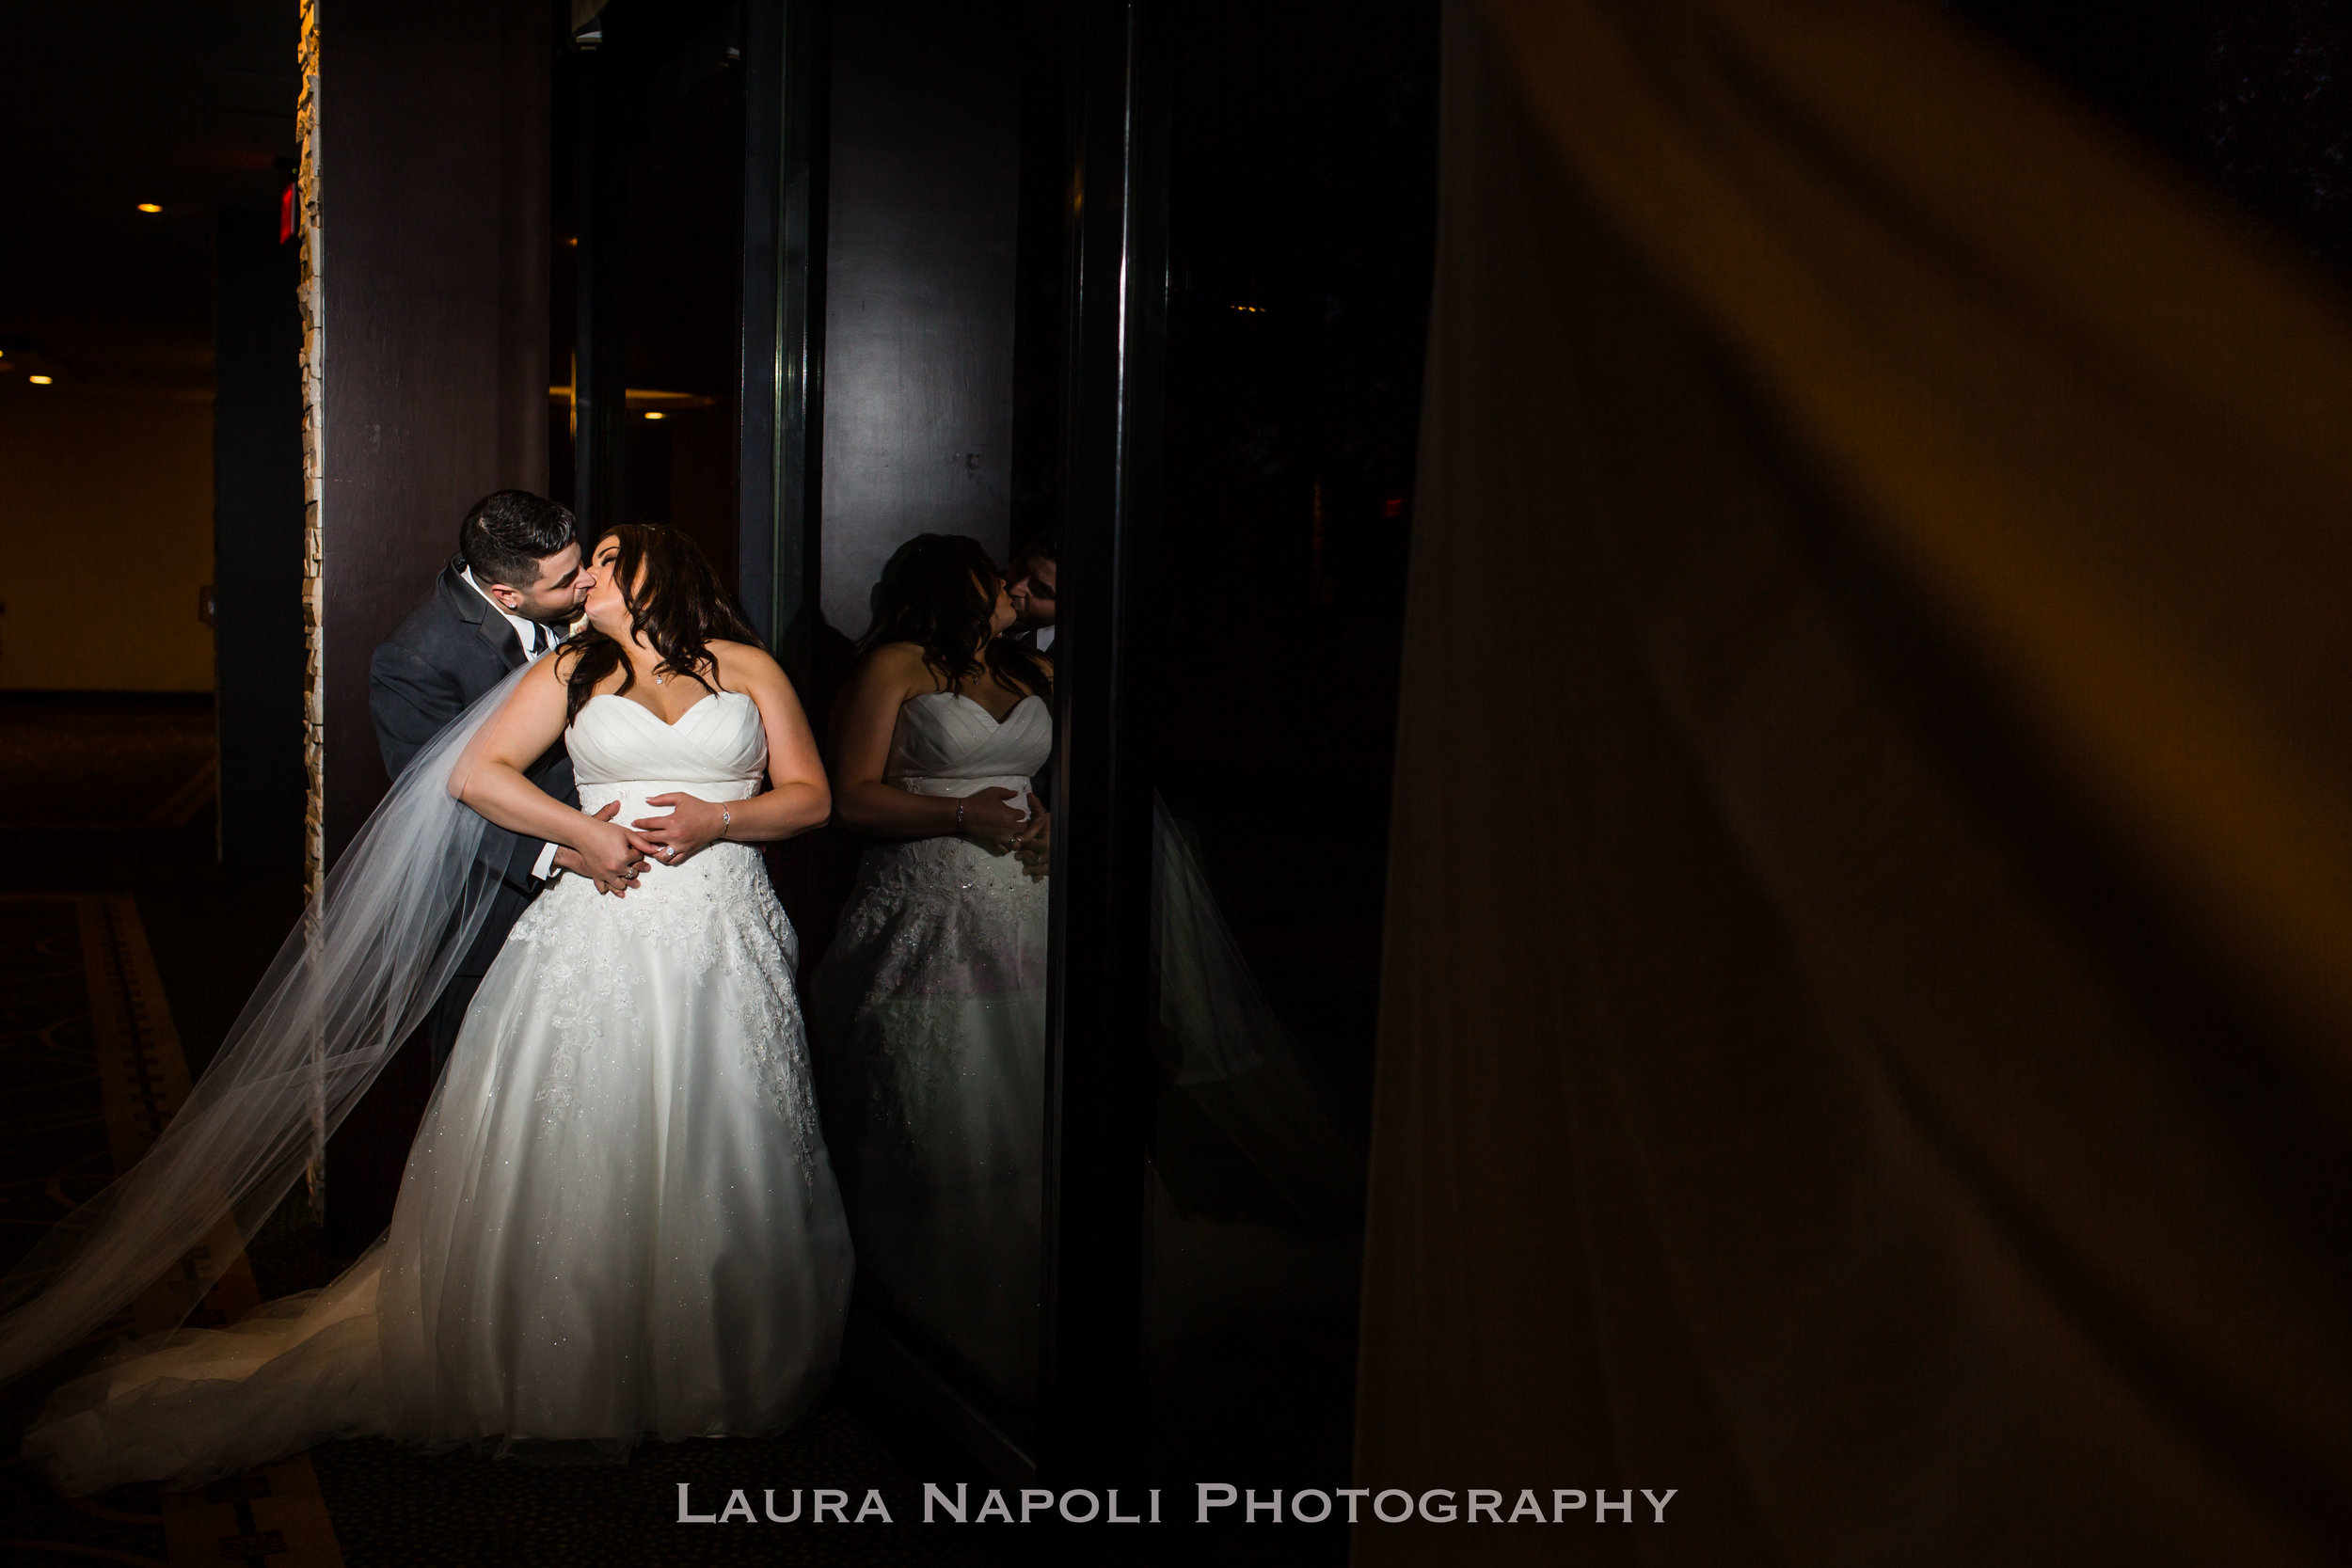 crowneplazacherryhillnjweddingphotographer-26.jpg